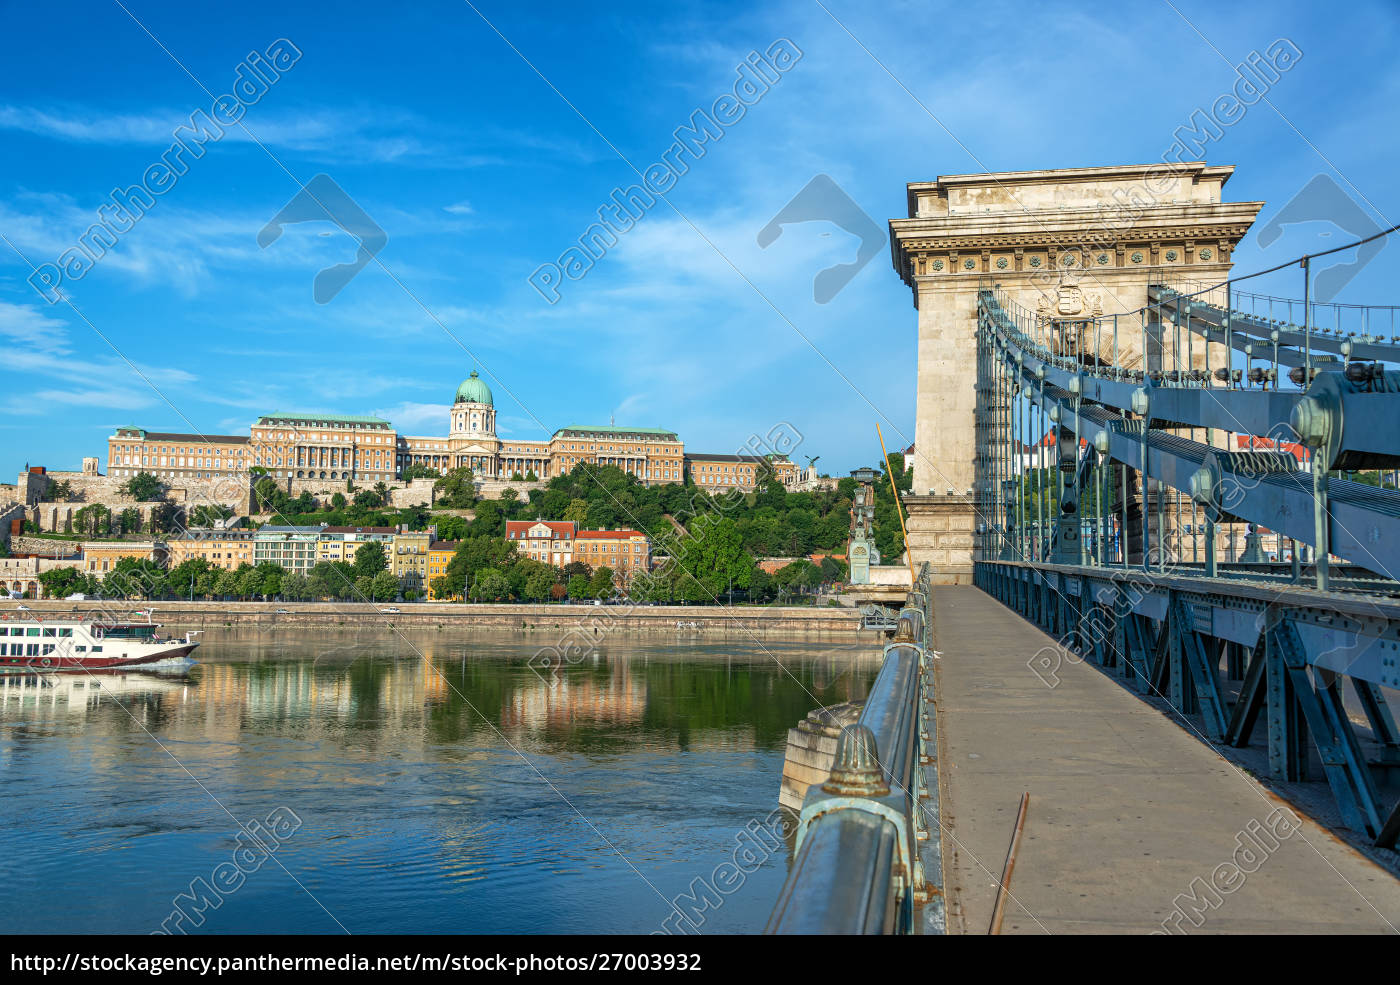 danube, river, and, national, gallery - 27003932